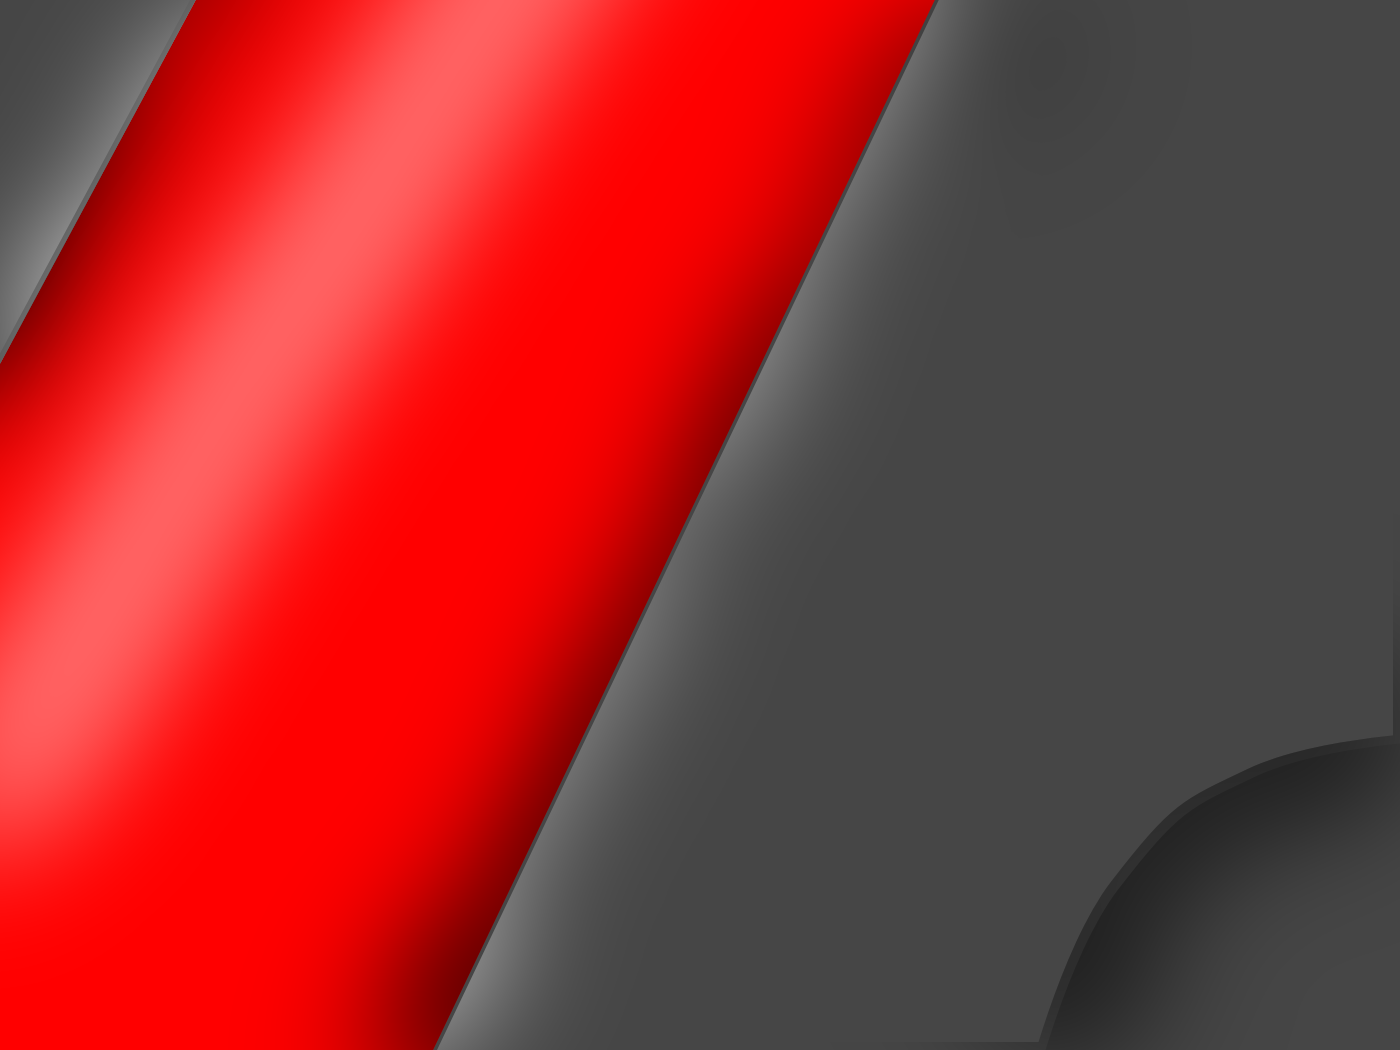 Wallpaper red and black by too fast on deviantart for Red and grey wallpaper